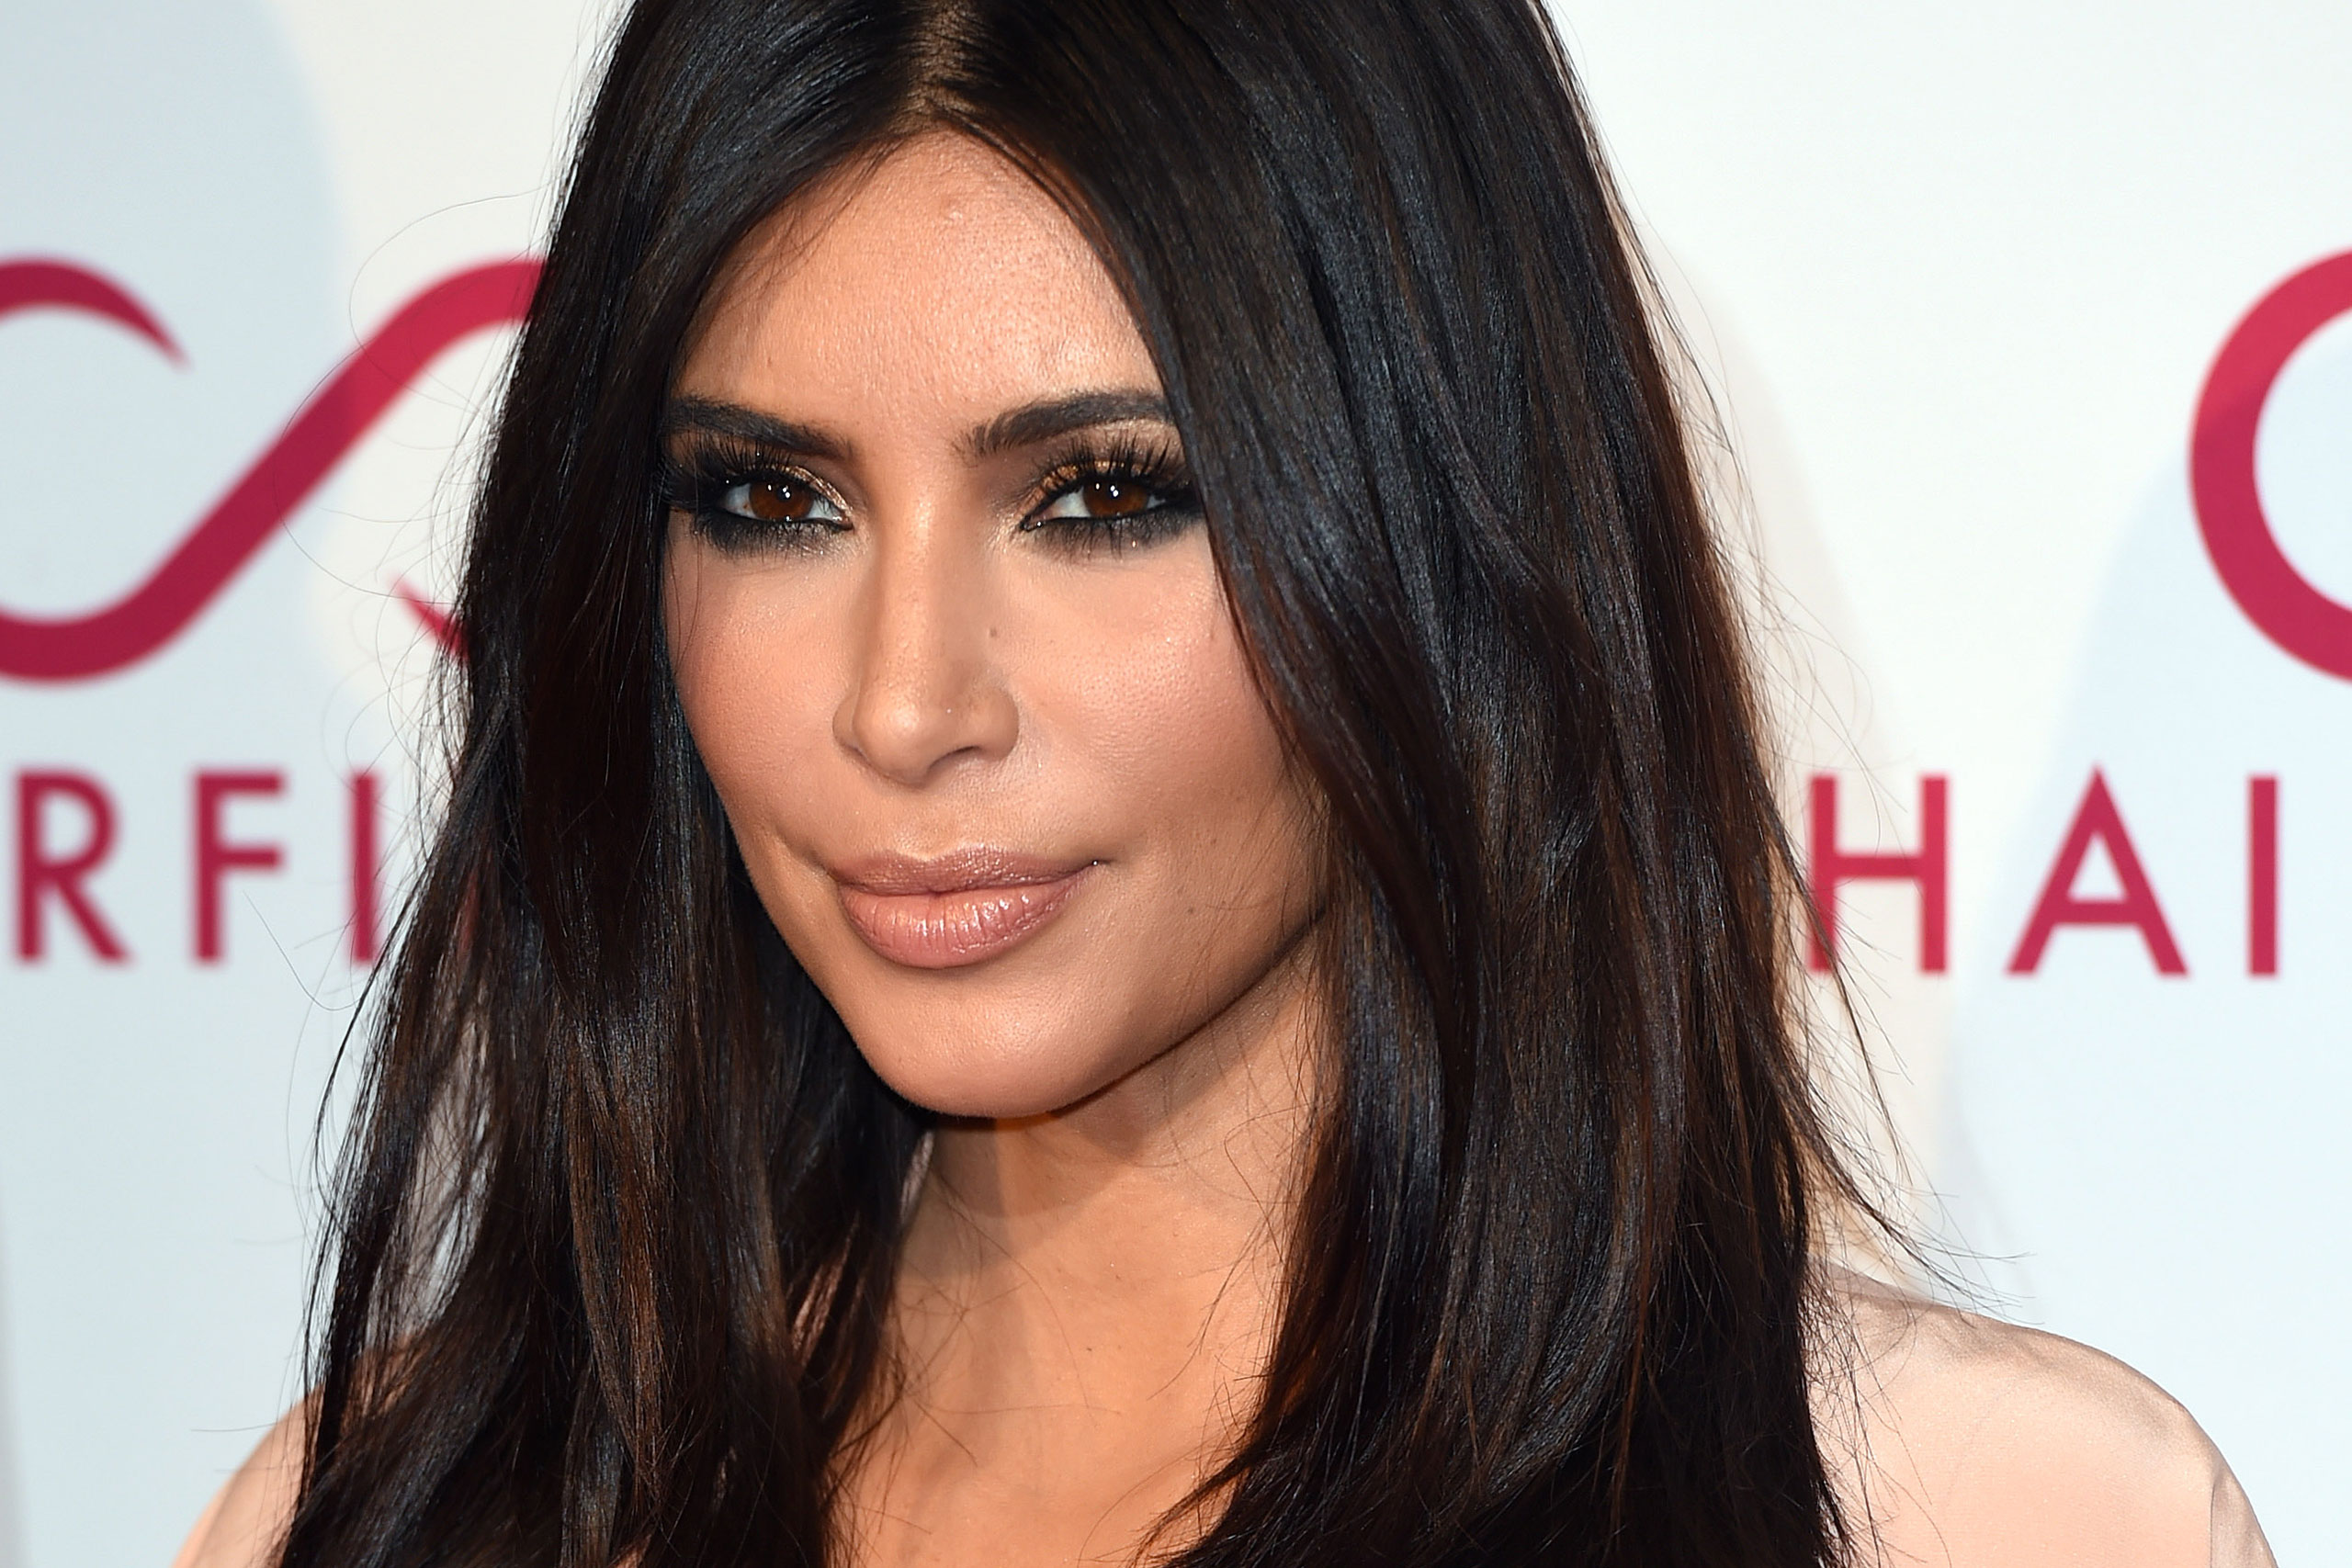 Kim Kardashian attends the Hairfinity UK Launch Party on Nov. 8, 2014 in London.